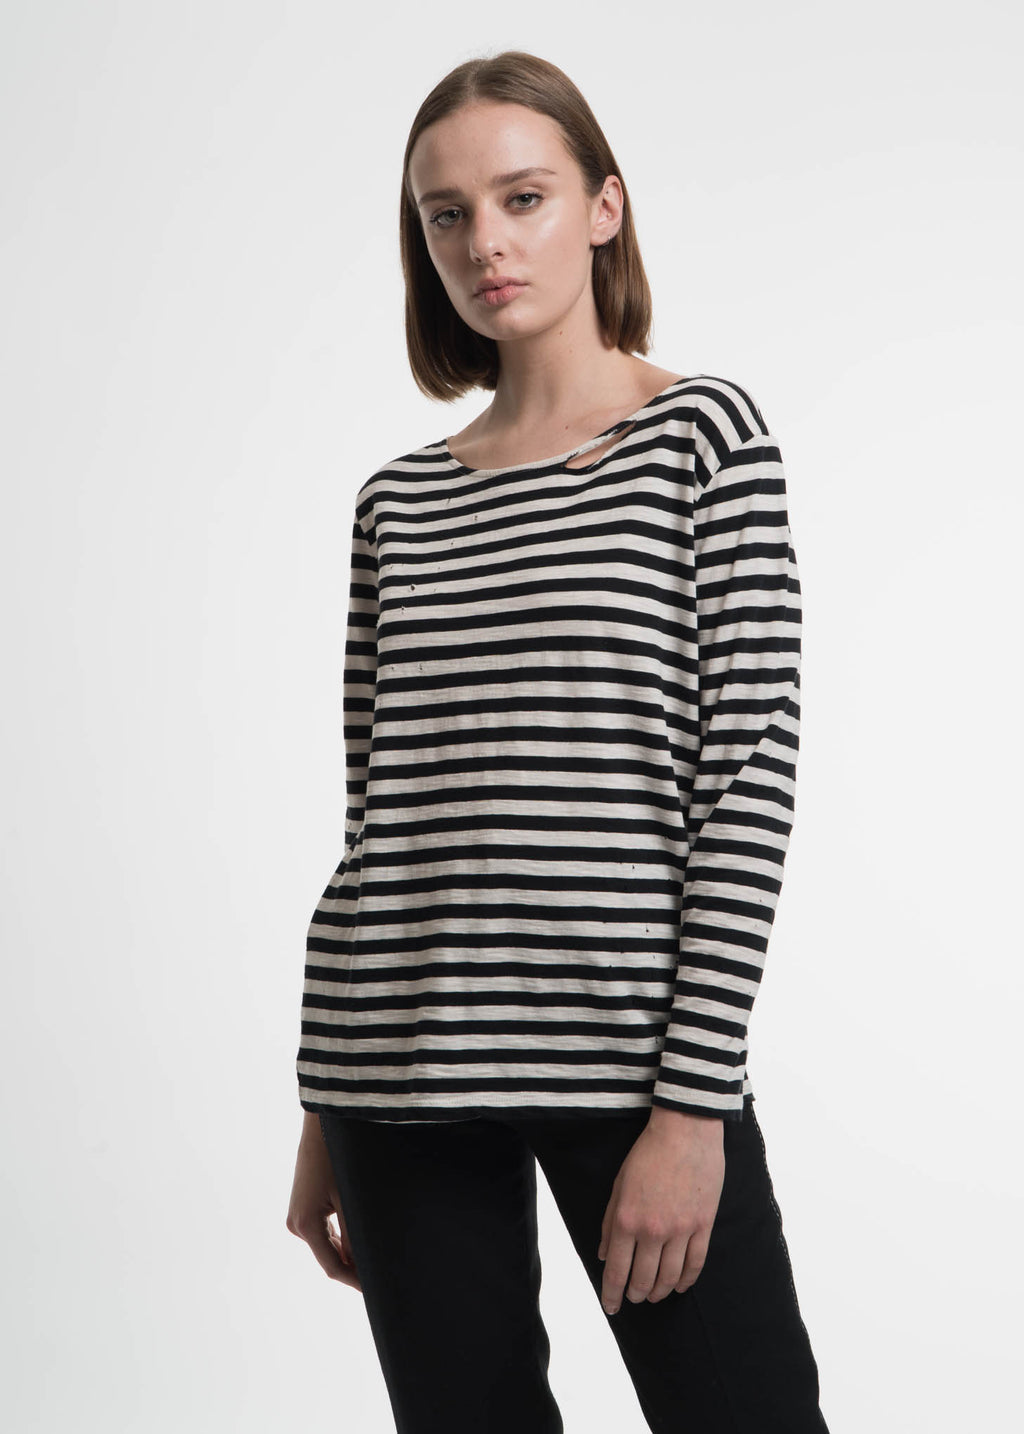 Garcons Infideles, Kurt Striped Long Sleeve, 017 Shop